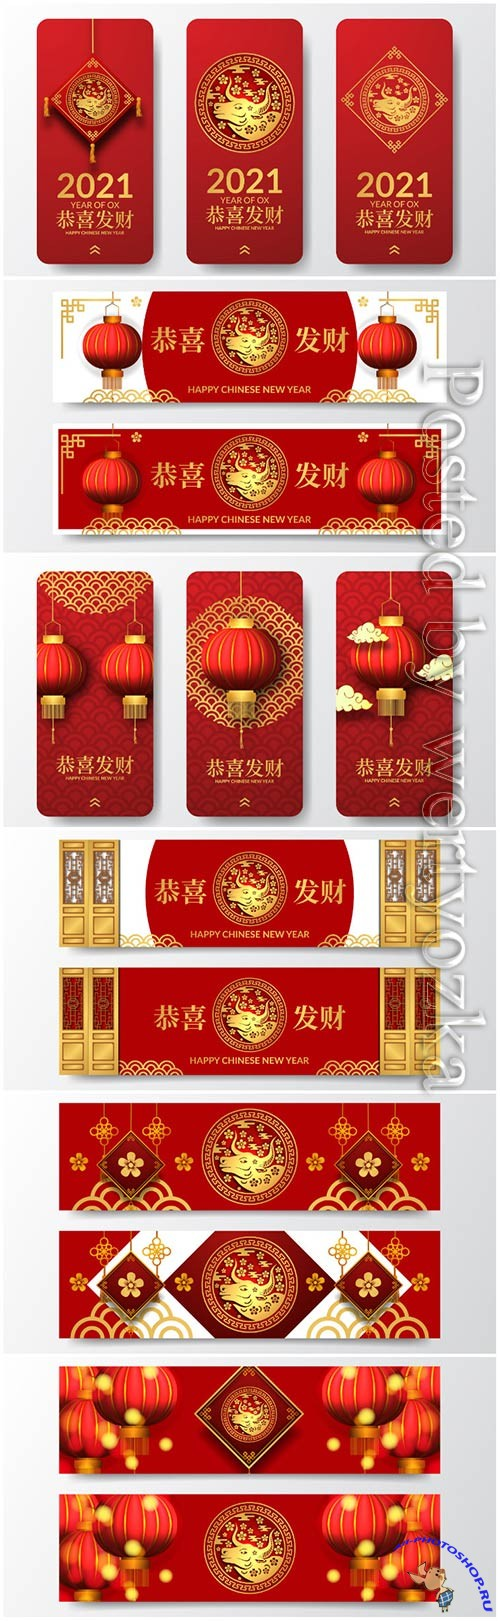 Happy chinese new year 2021 vector illustrations